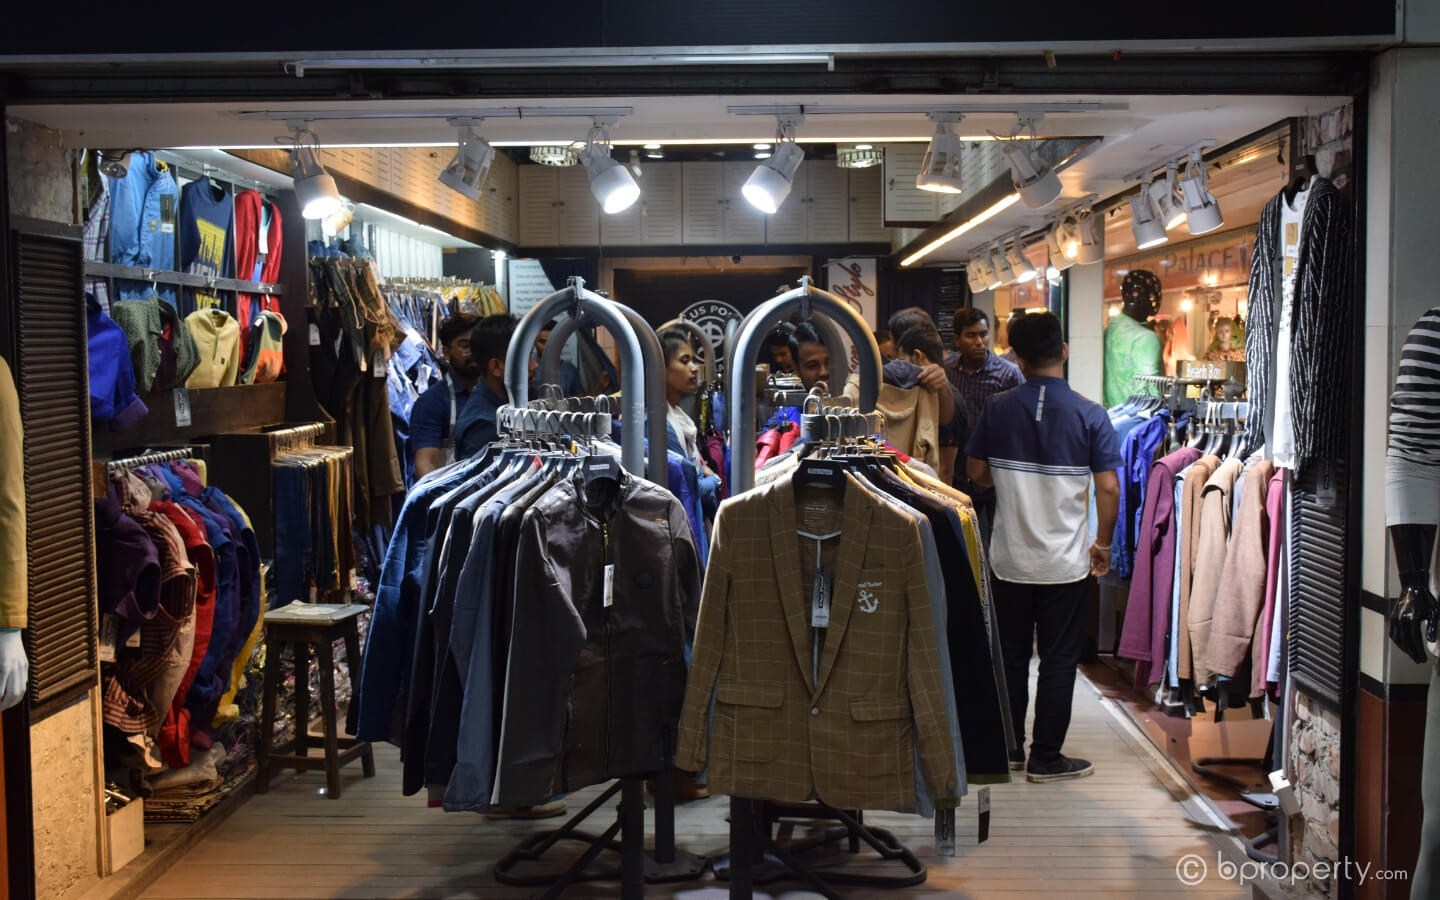 High-end winter clothes can be found in Bashundhara Shopping Mall